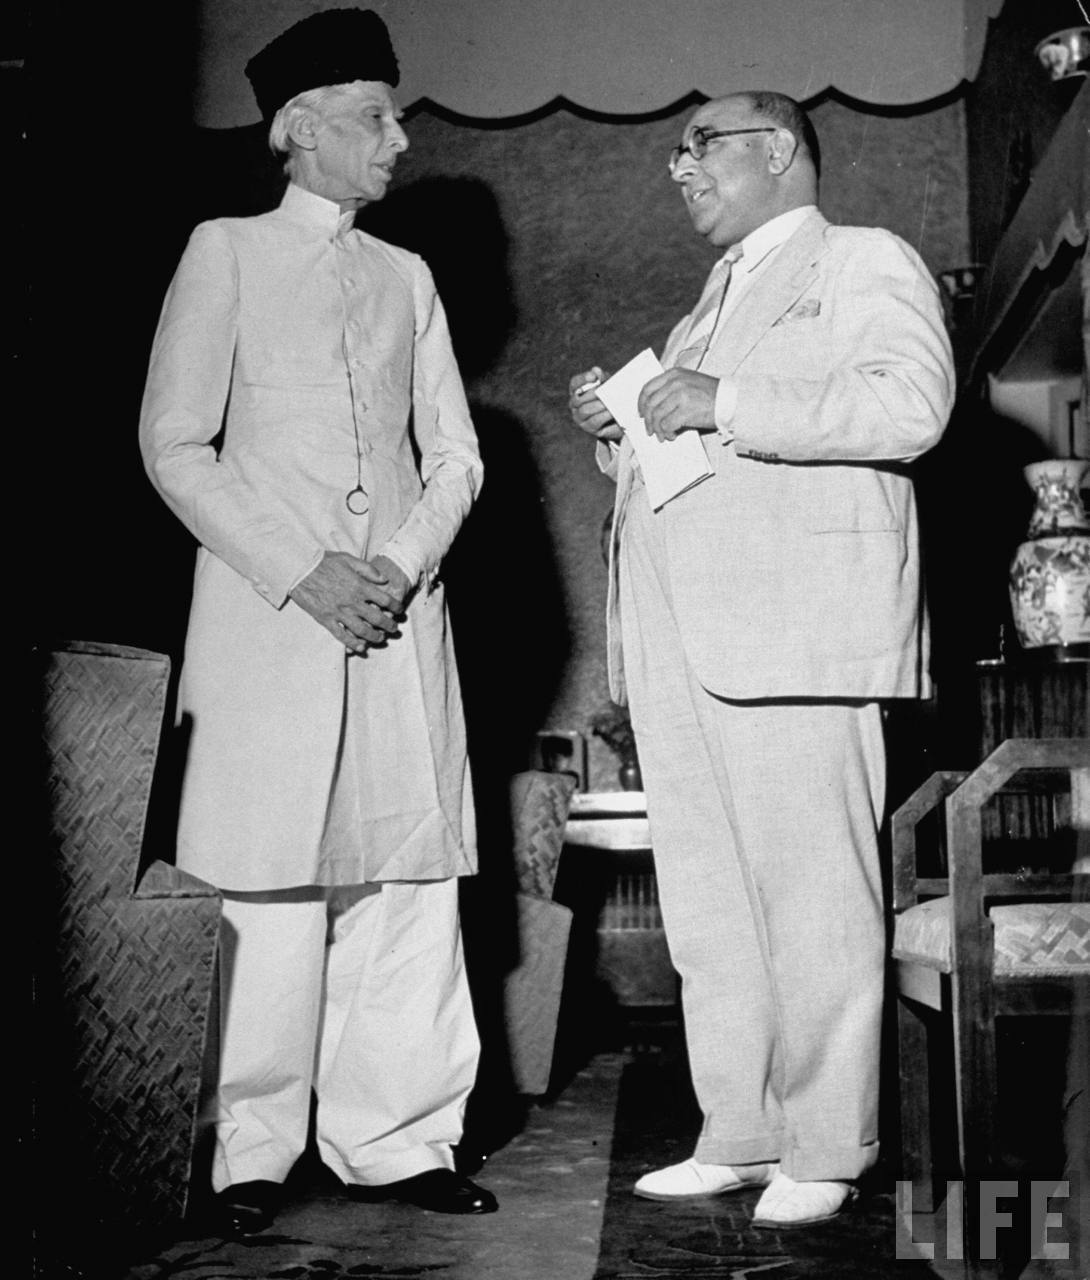 Mohammed Ali Jinnah, President of India's Moslem League in conversation with Nawazawa Liaquad Ali Khan at a political meeting - New Delhi May 1946